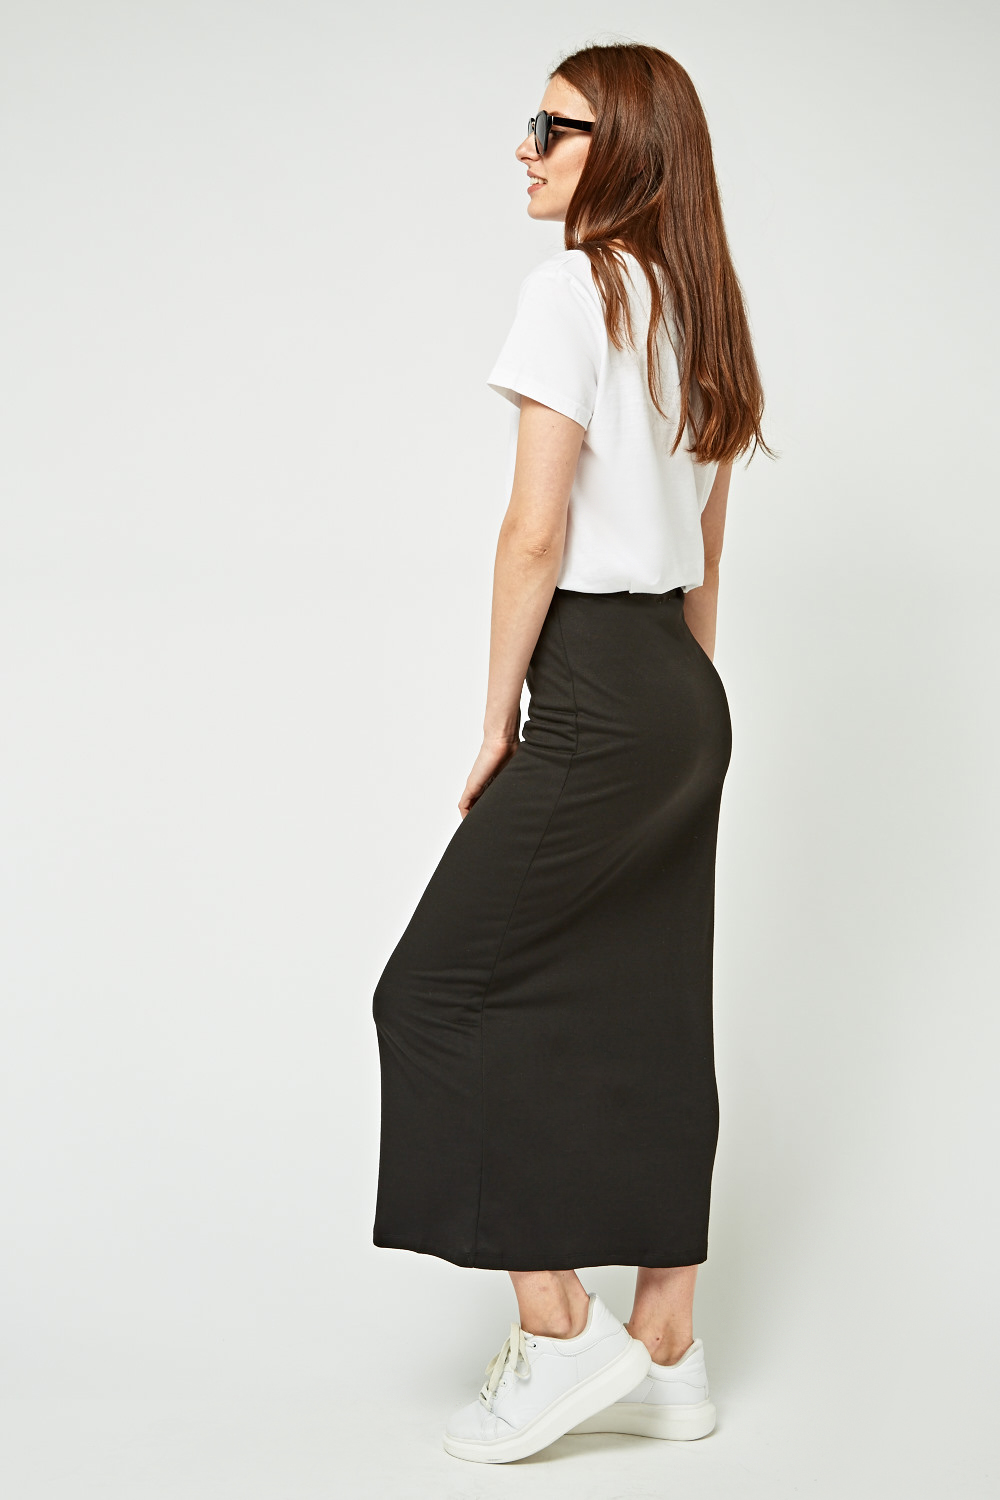 d7315dc395f How To Style High Waisted Maxi Skirts